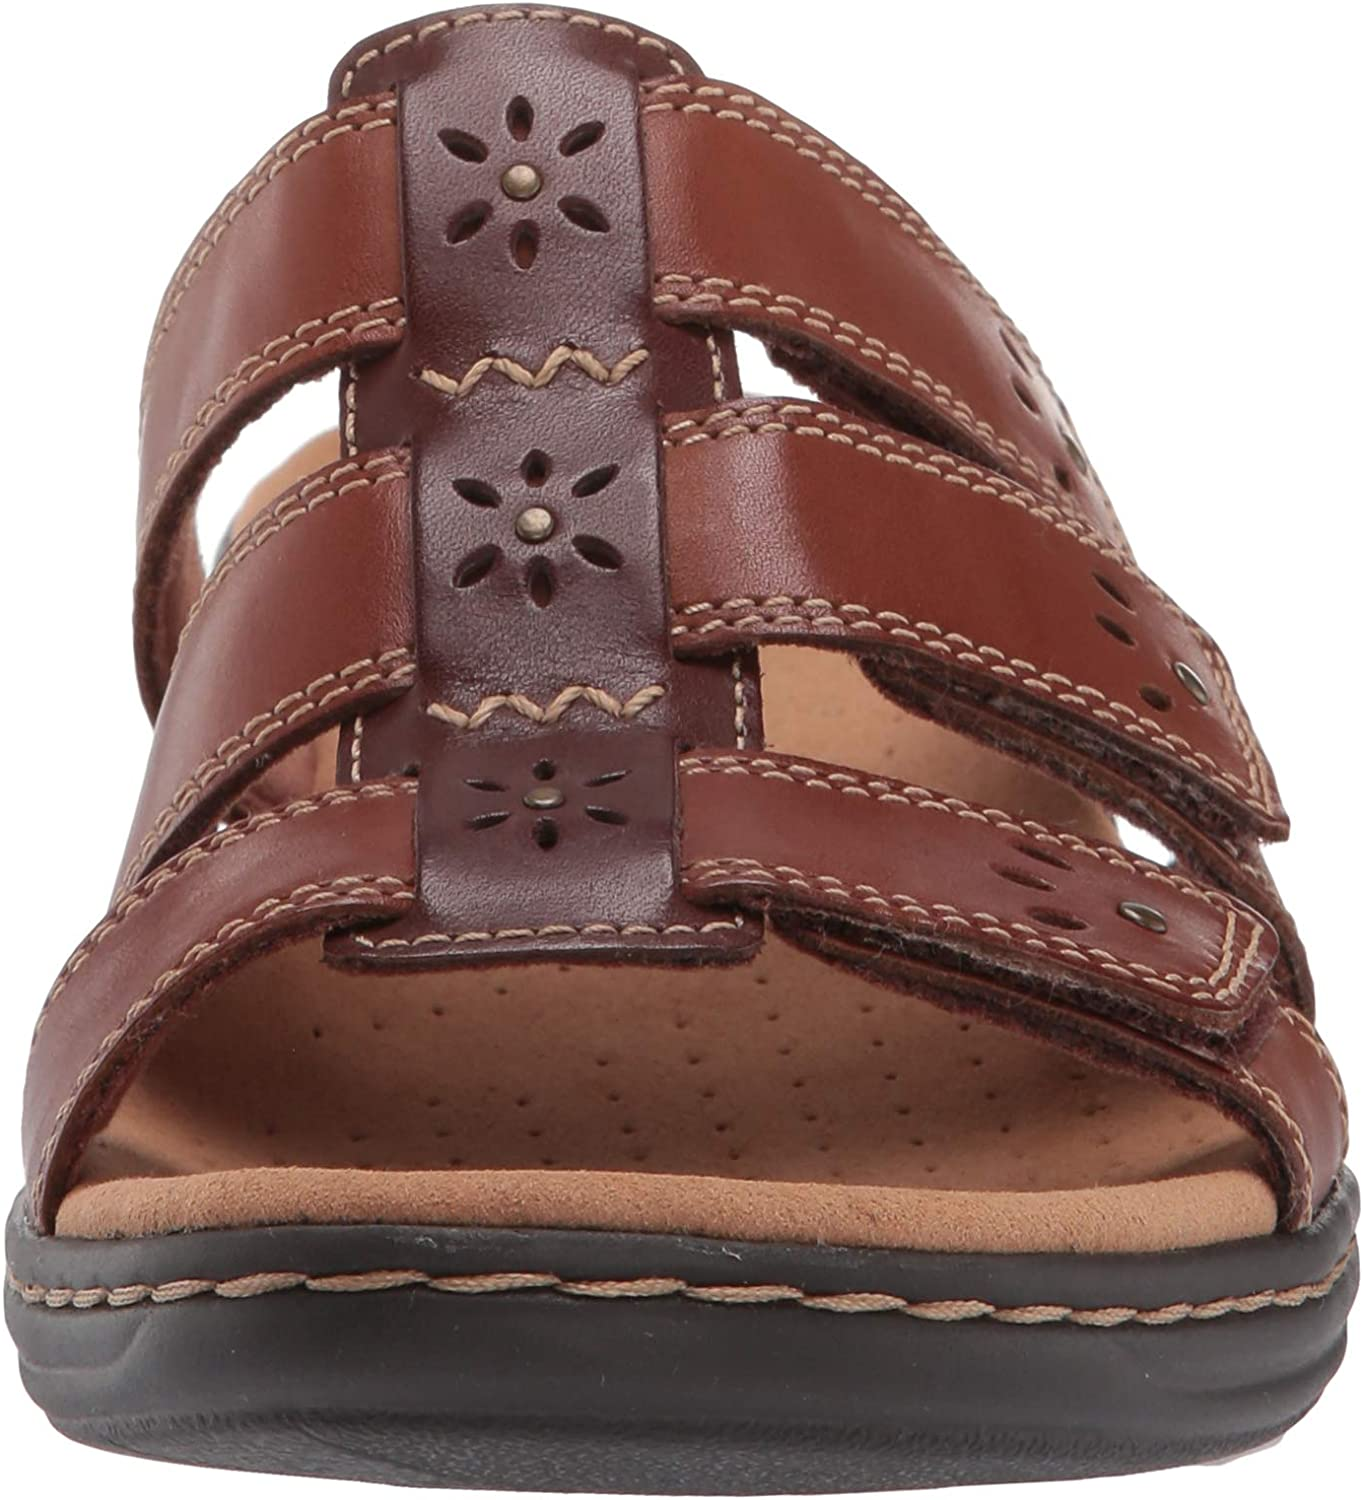 Clarks Women's Leisa Spring Slide Sandal Brown Multi Leather